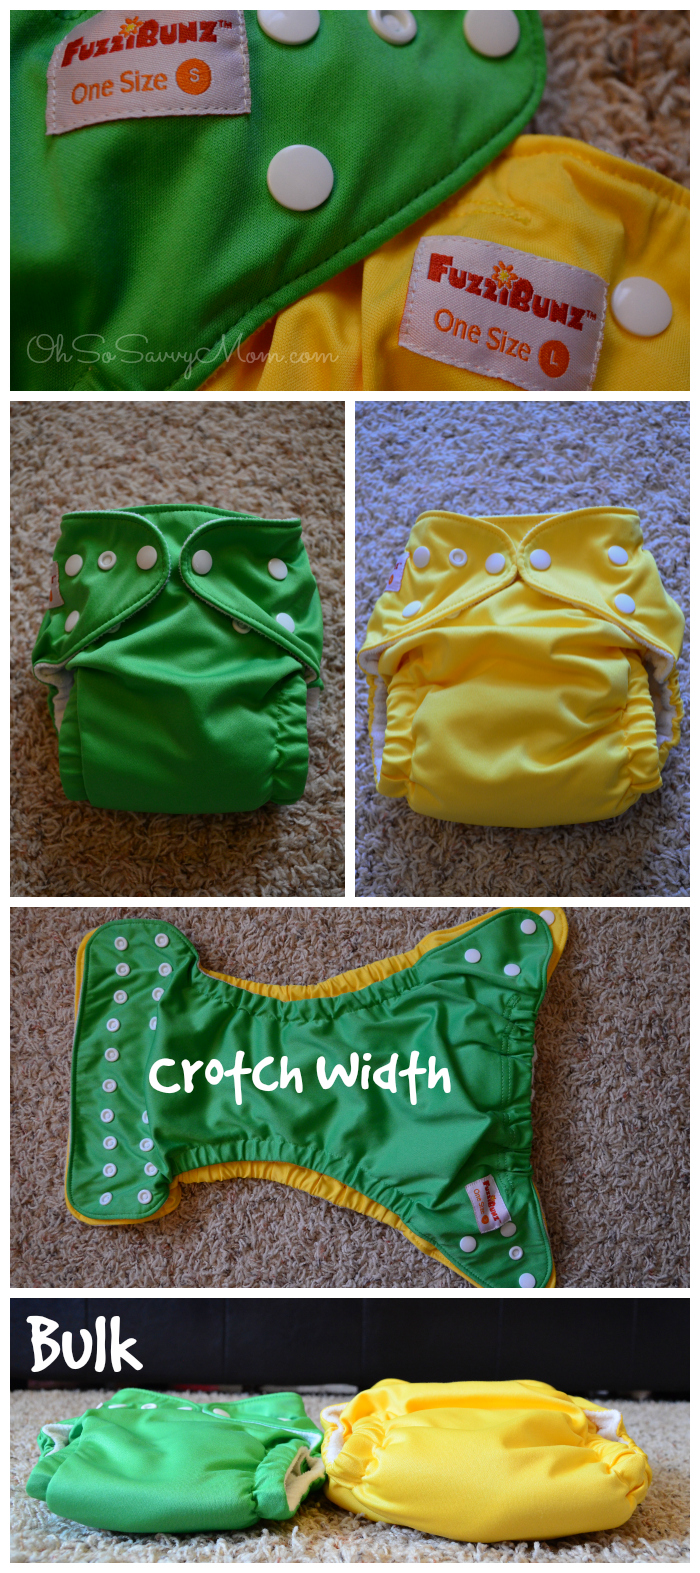 FuzziBunz One-Size Cloth Diaper Small and Large Comparison